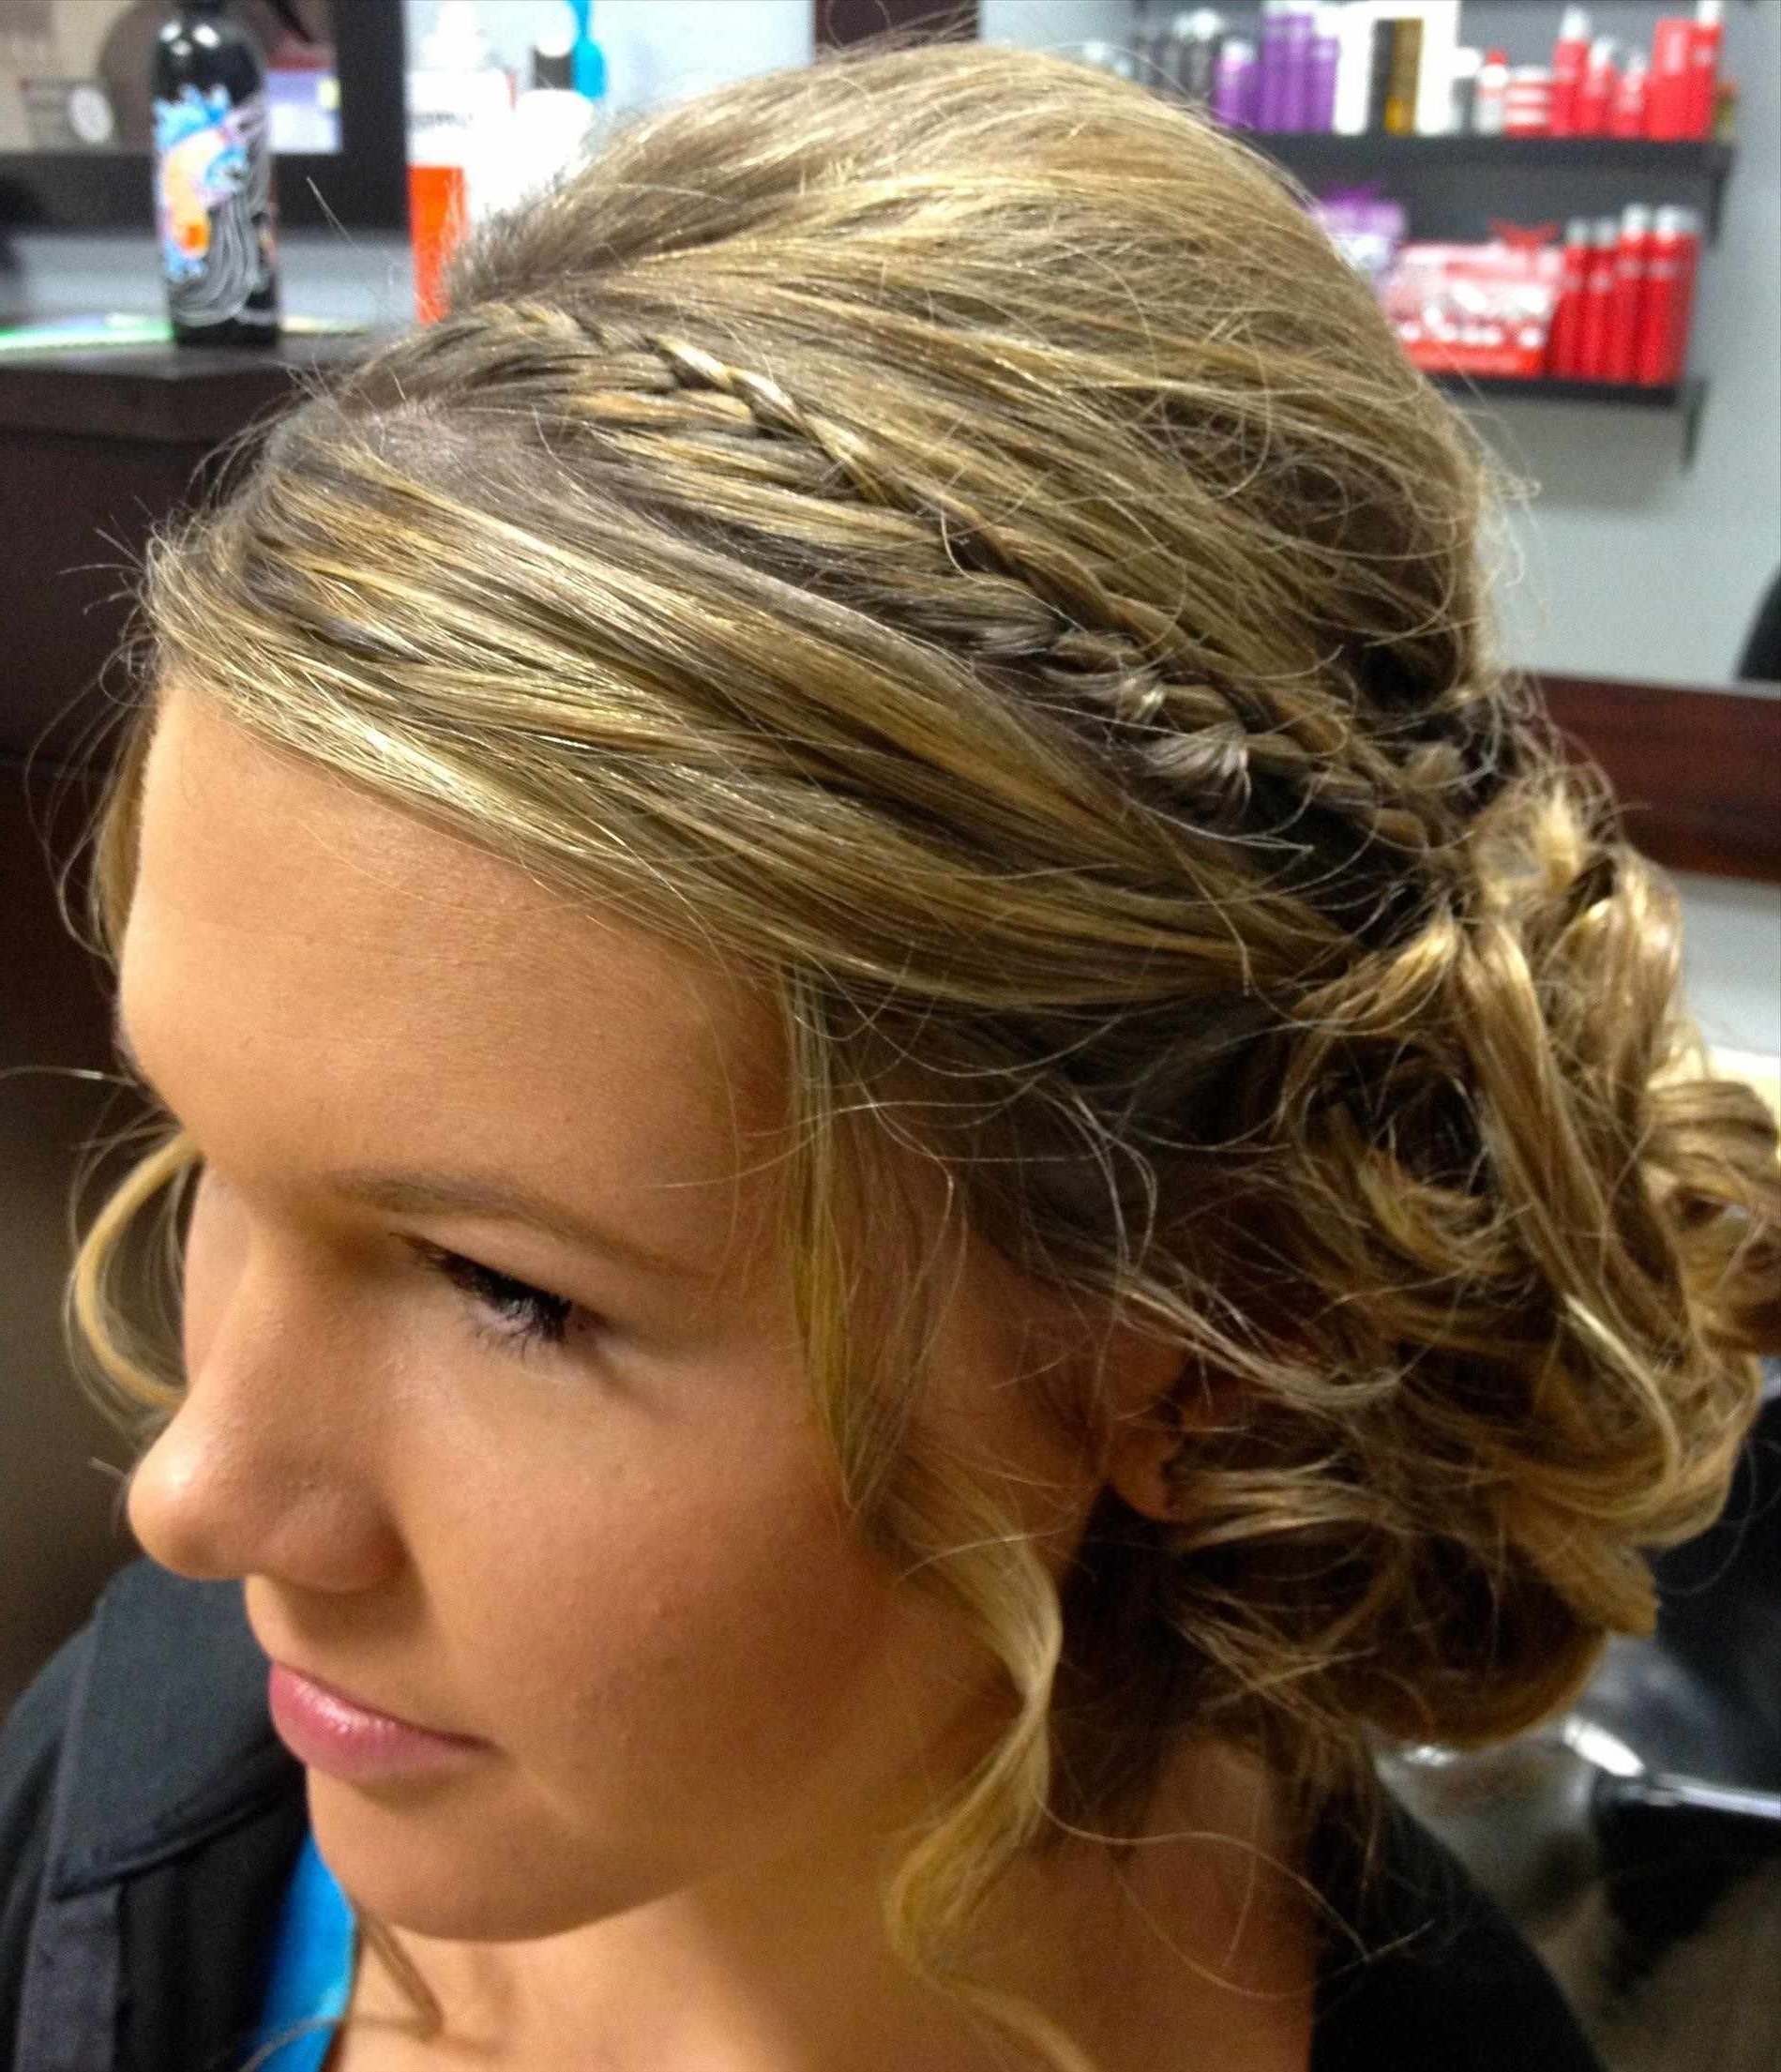 Homecoming Hairstyles For Medium Hair Updo Fresh She Look Hair Prom Inside Homecoming Updos Medium Hairstyles (View 8 of 15)